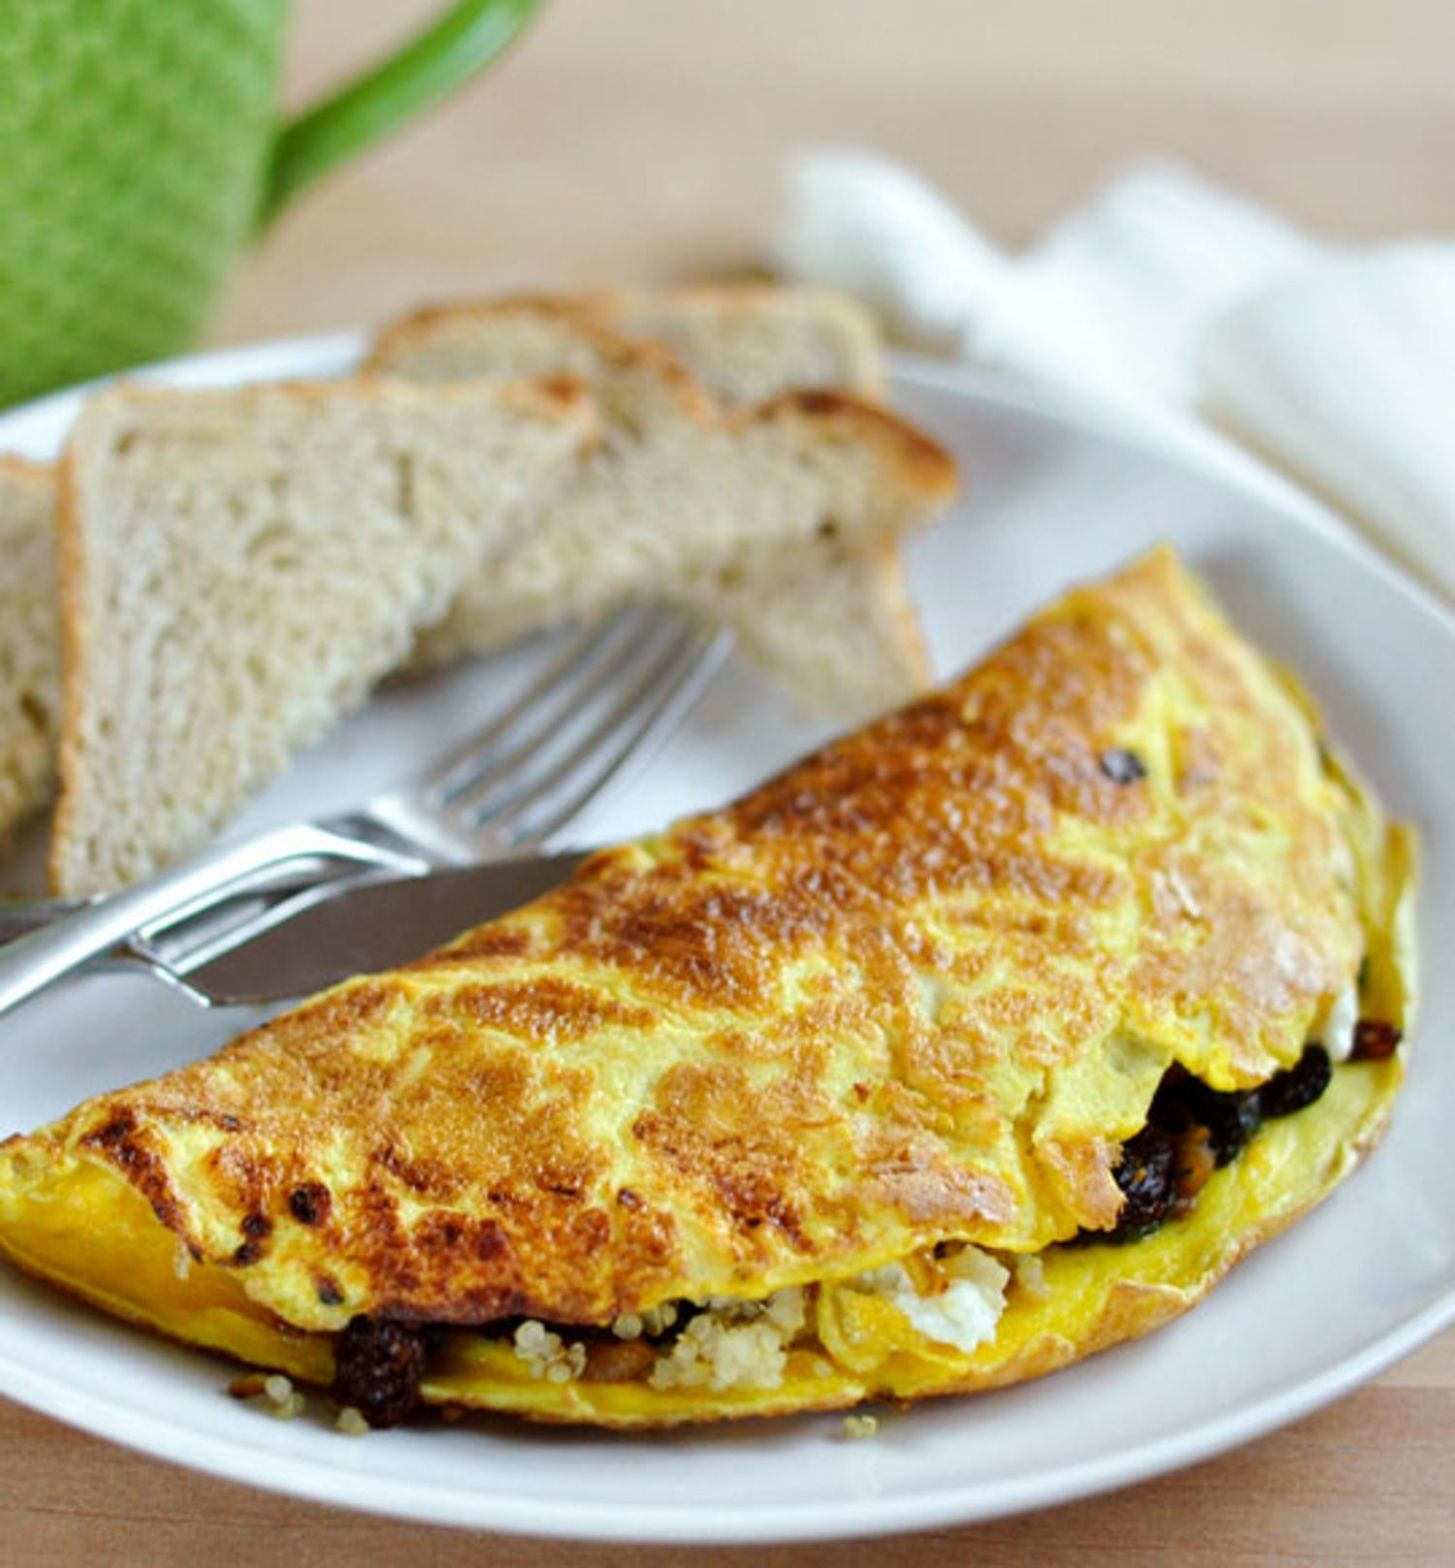 10-Egg Omelet with Quinoa, Sun-Dried Tomatoes, Spinach, and Goat Cheese - Recipe Egg Omelette Cheese